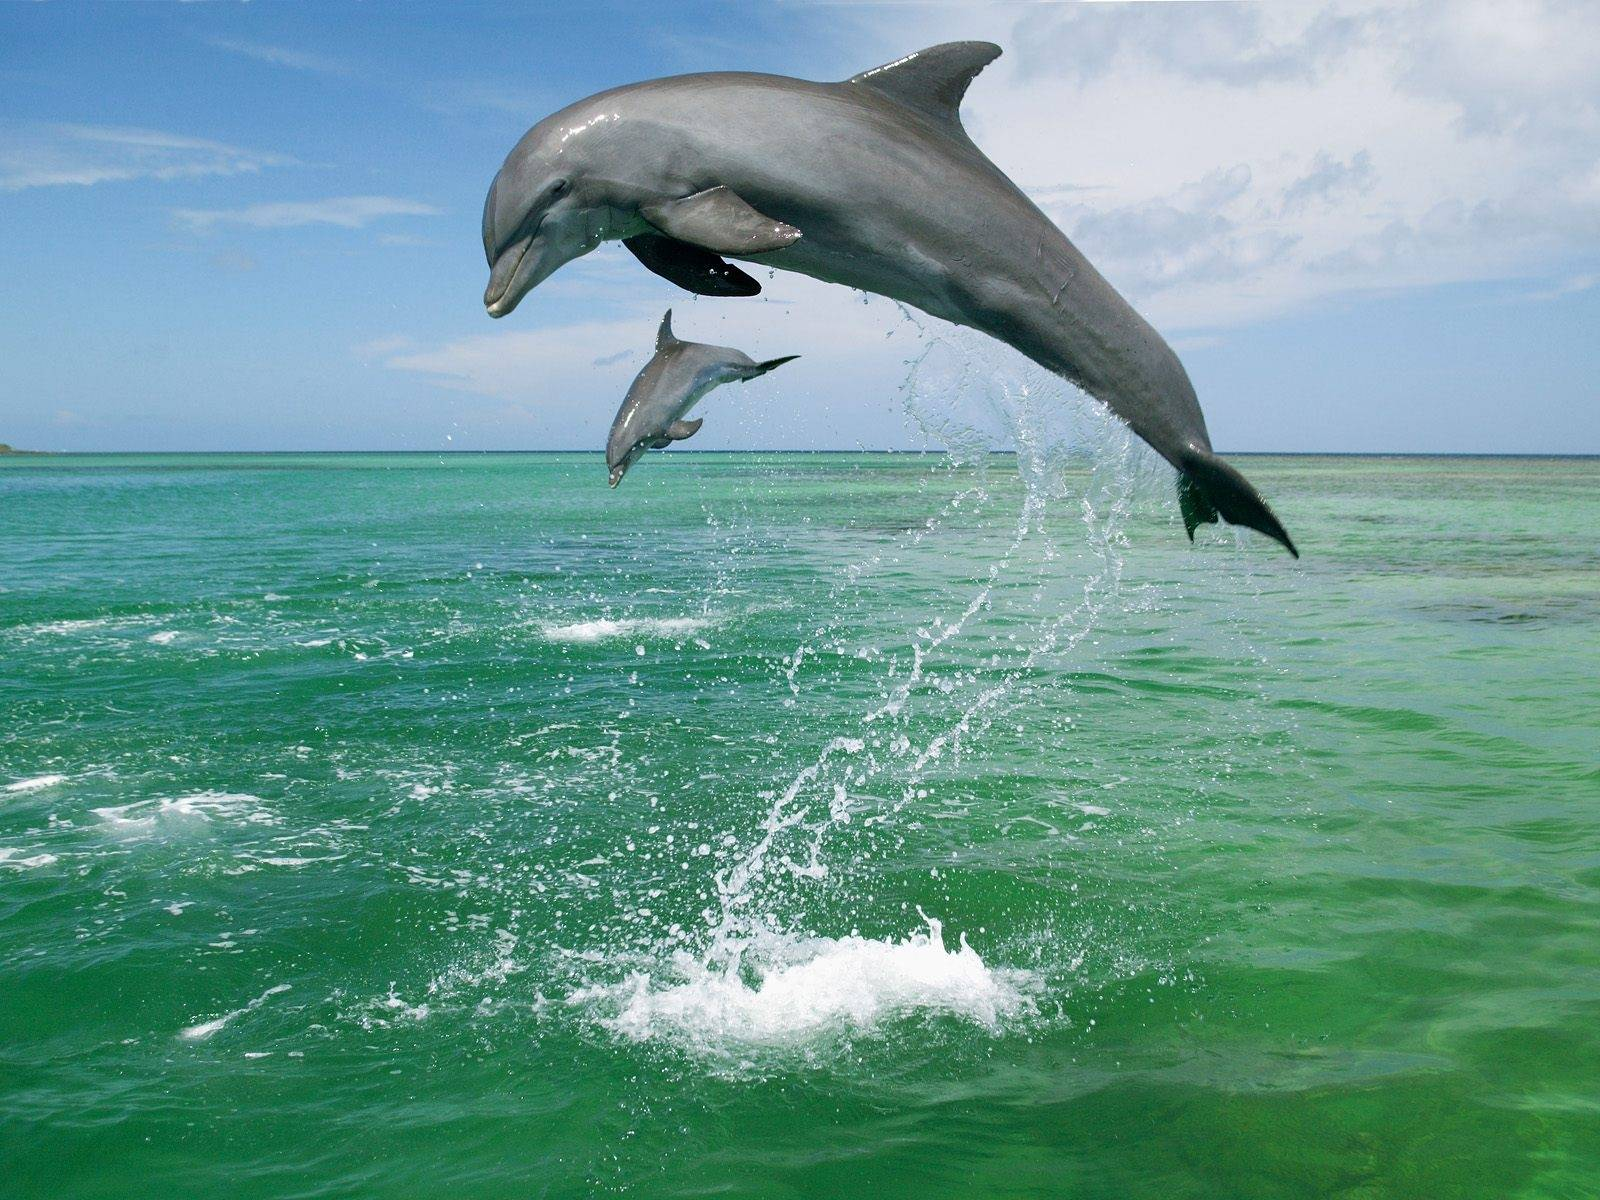 Dolphin clipart jpeg. Hd wallpaper background images